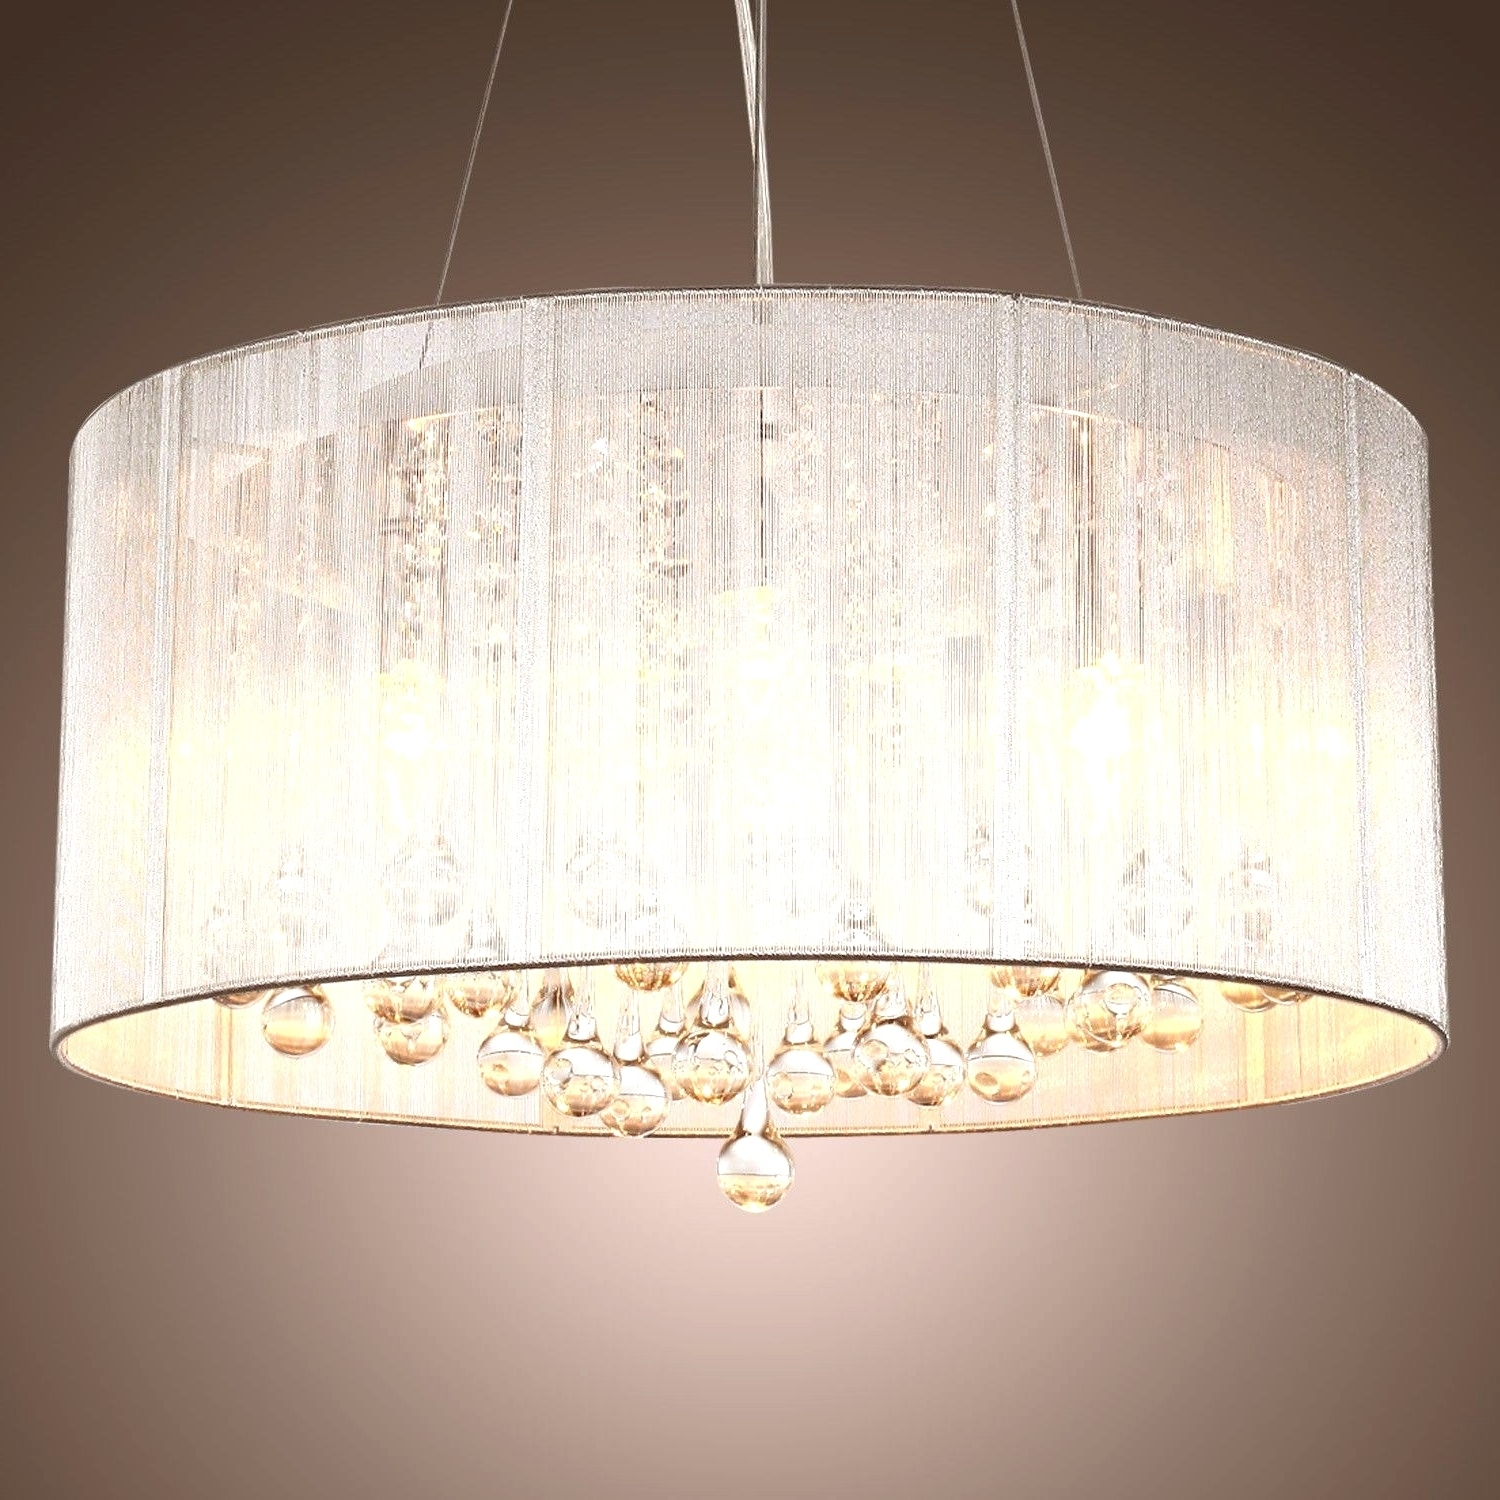 Clip On Drum Chandelier Shades Intended For Trendy Chandeliers Design : Magnificent Best Clip On Drum Chandelier Shades (View 8 of 20)